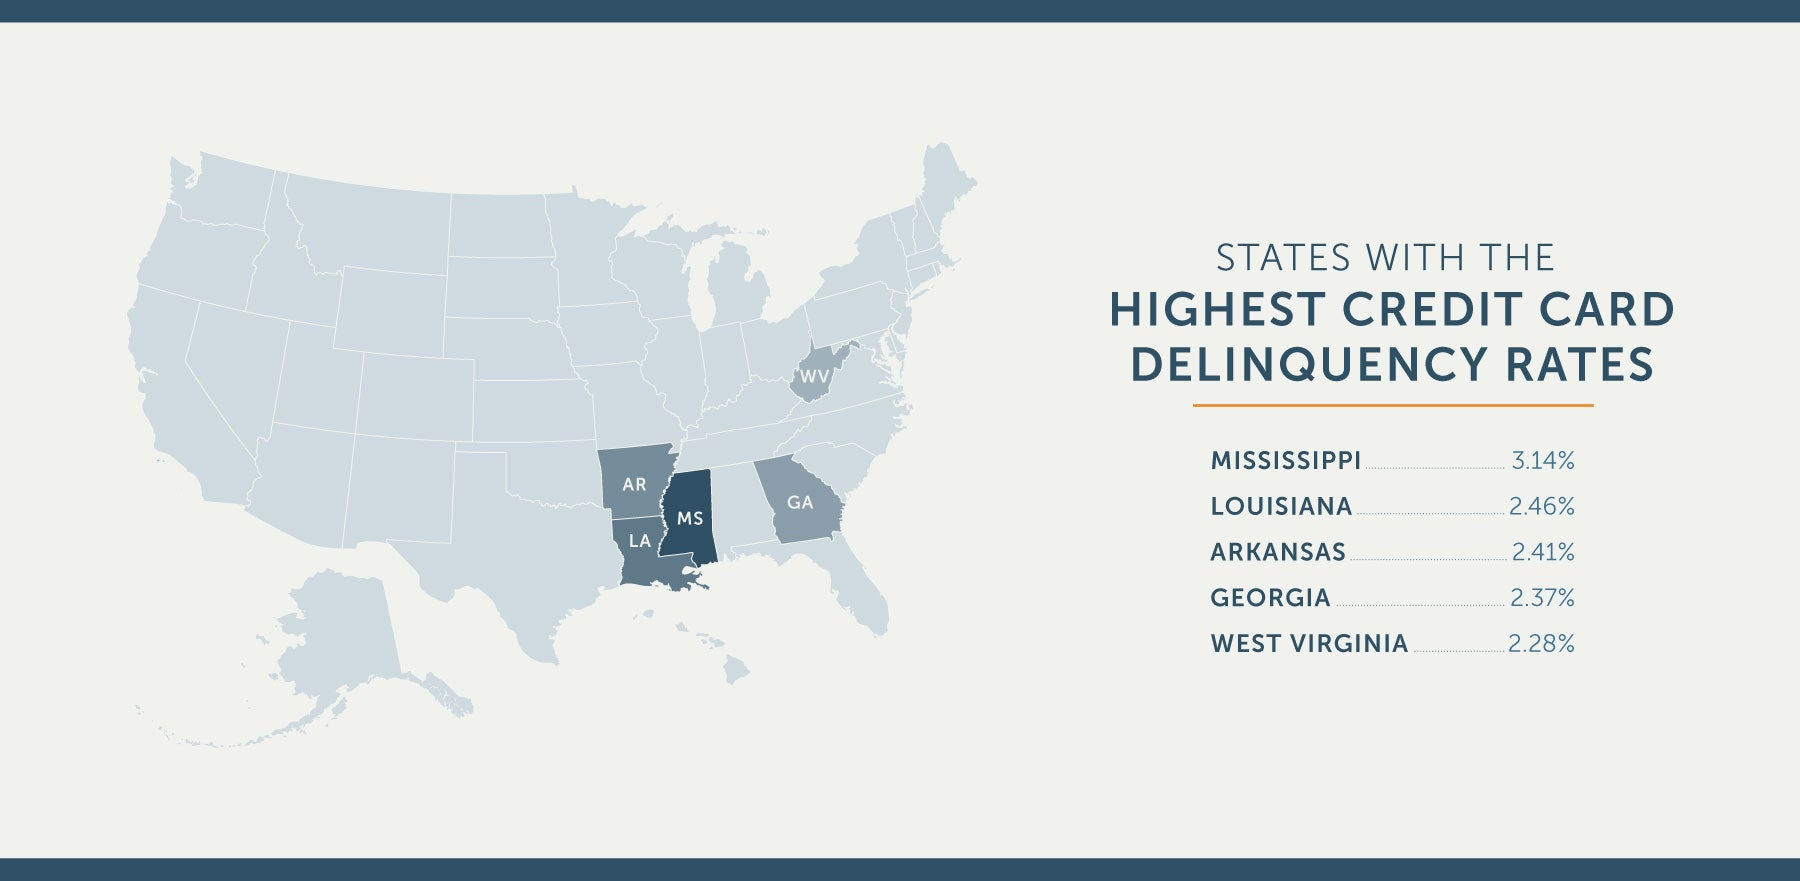 US states with the highest credit card delinquency rates